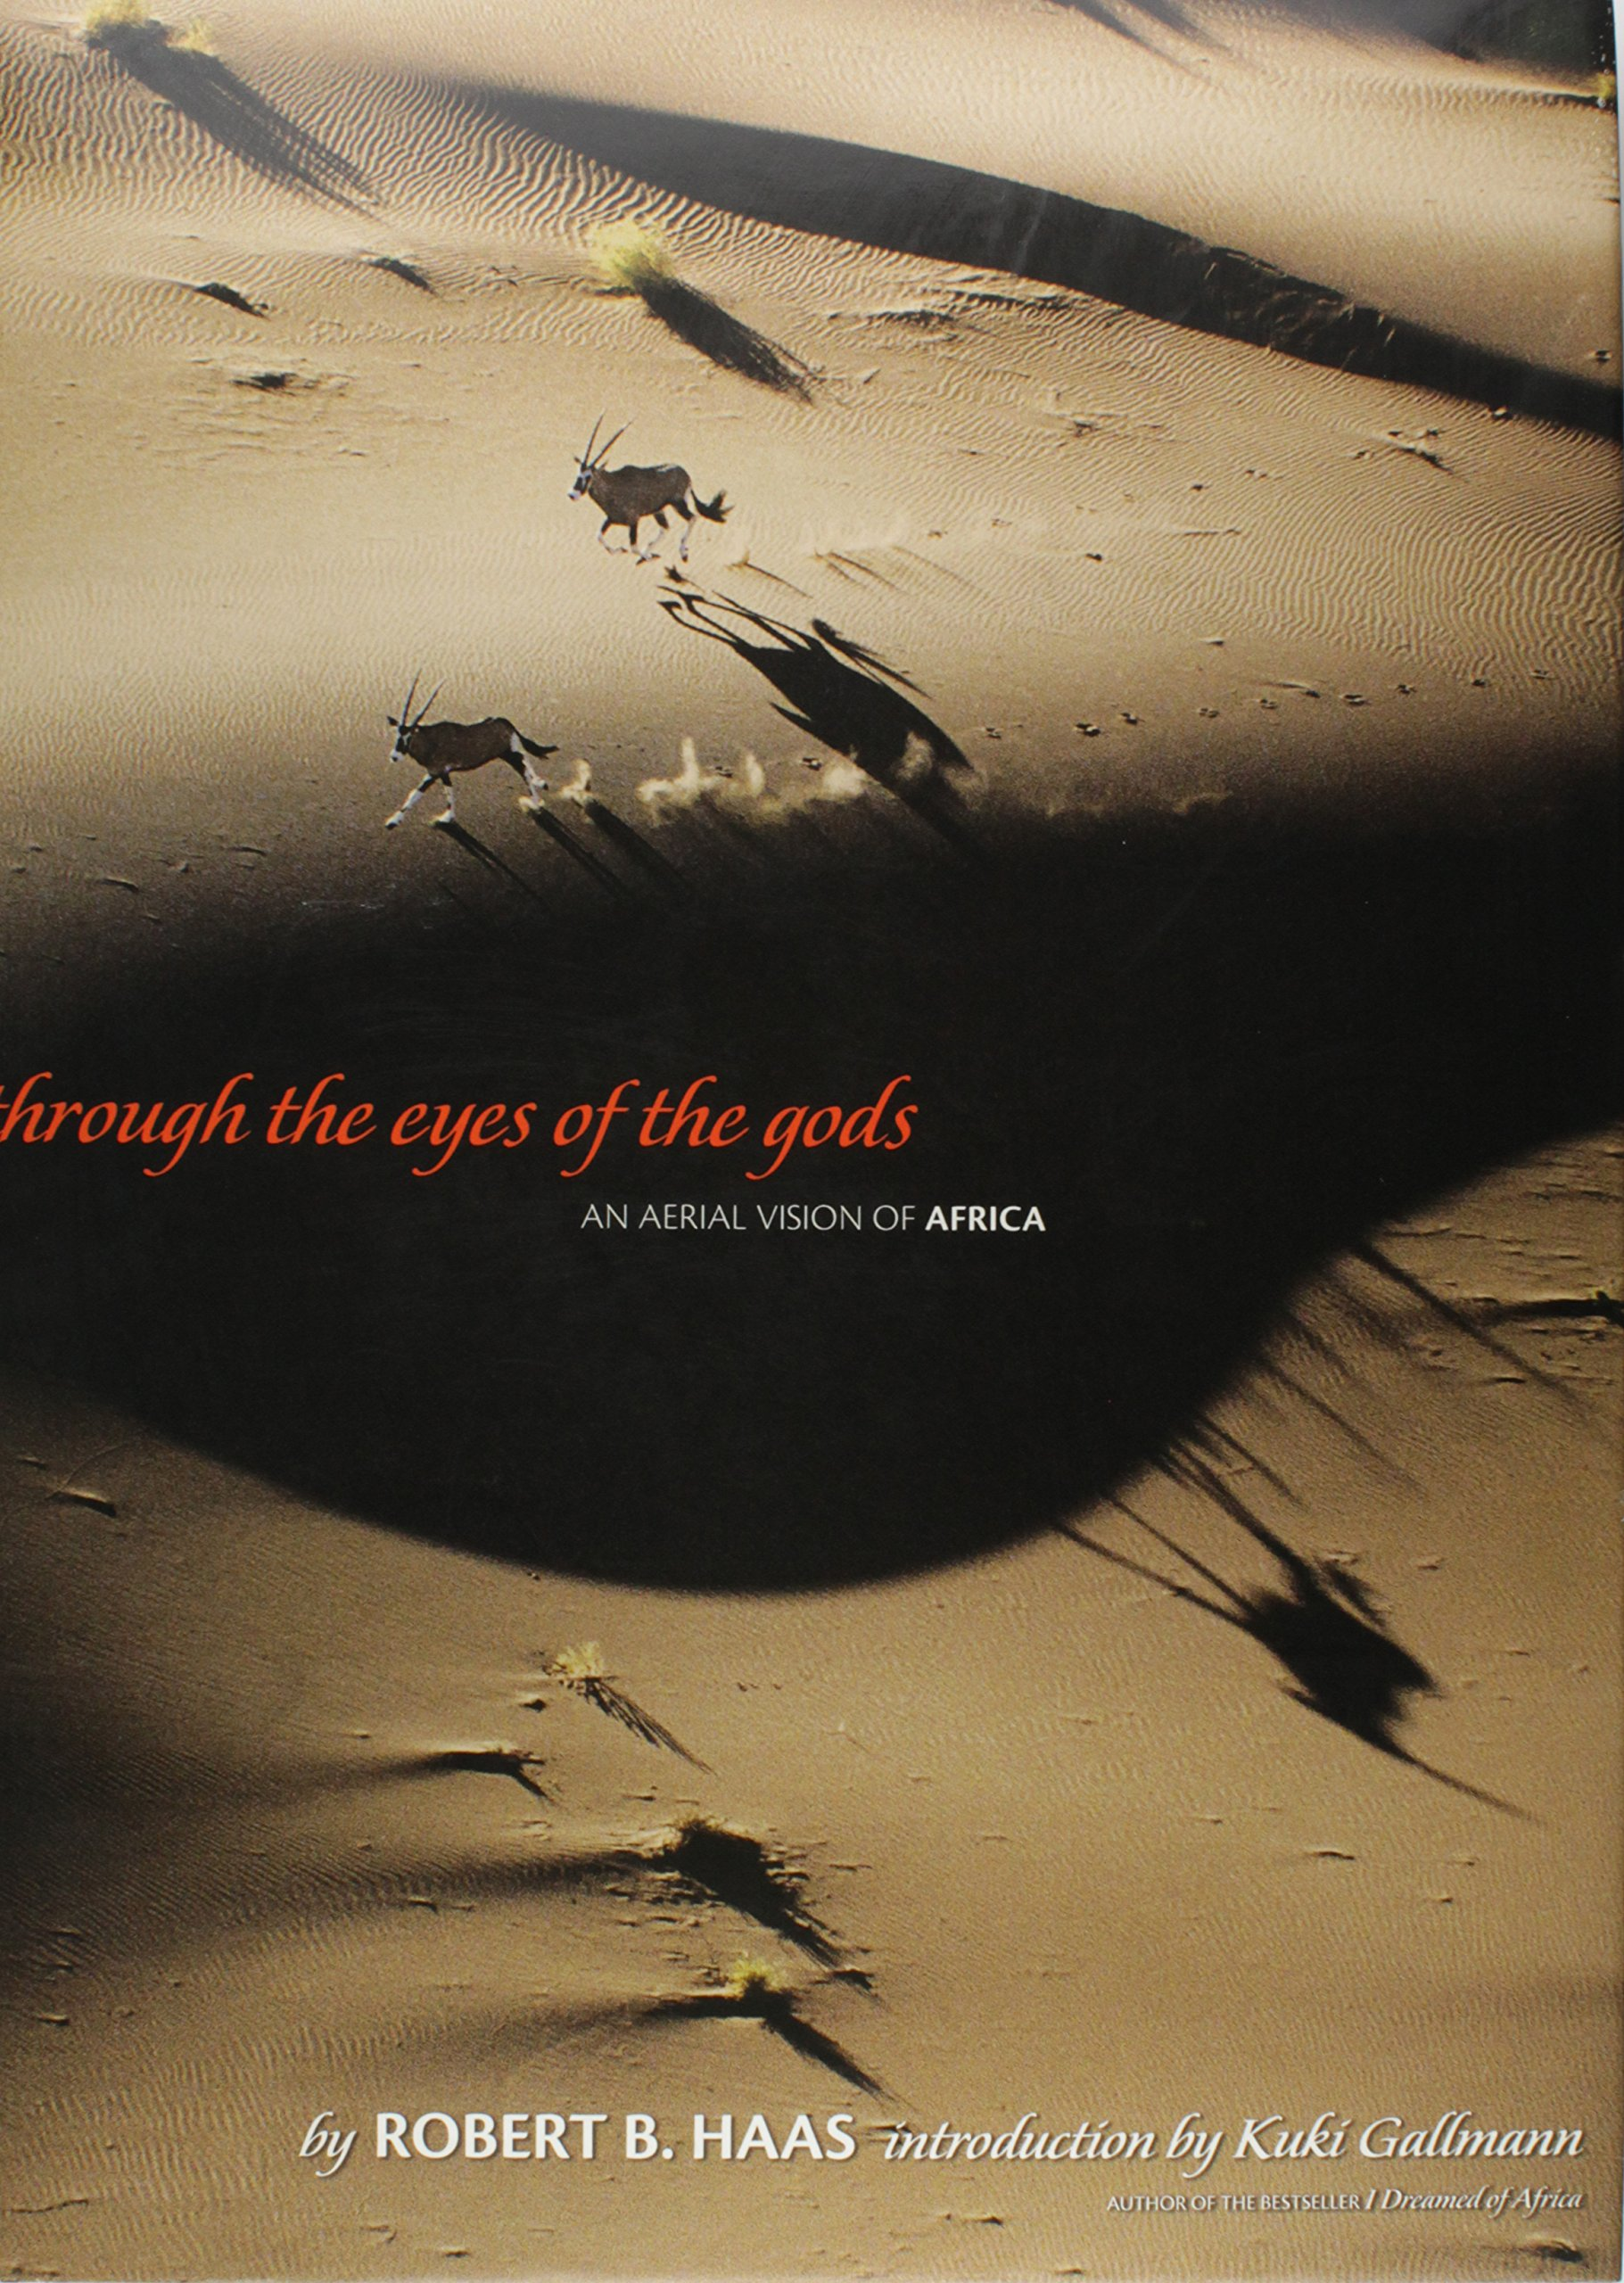 Through the Eyes of the Gods: An Aerial Vision of Africa